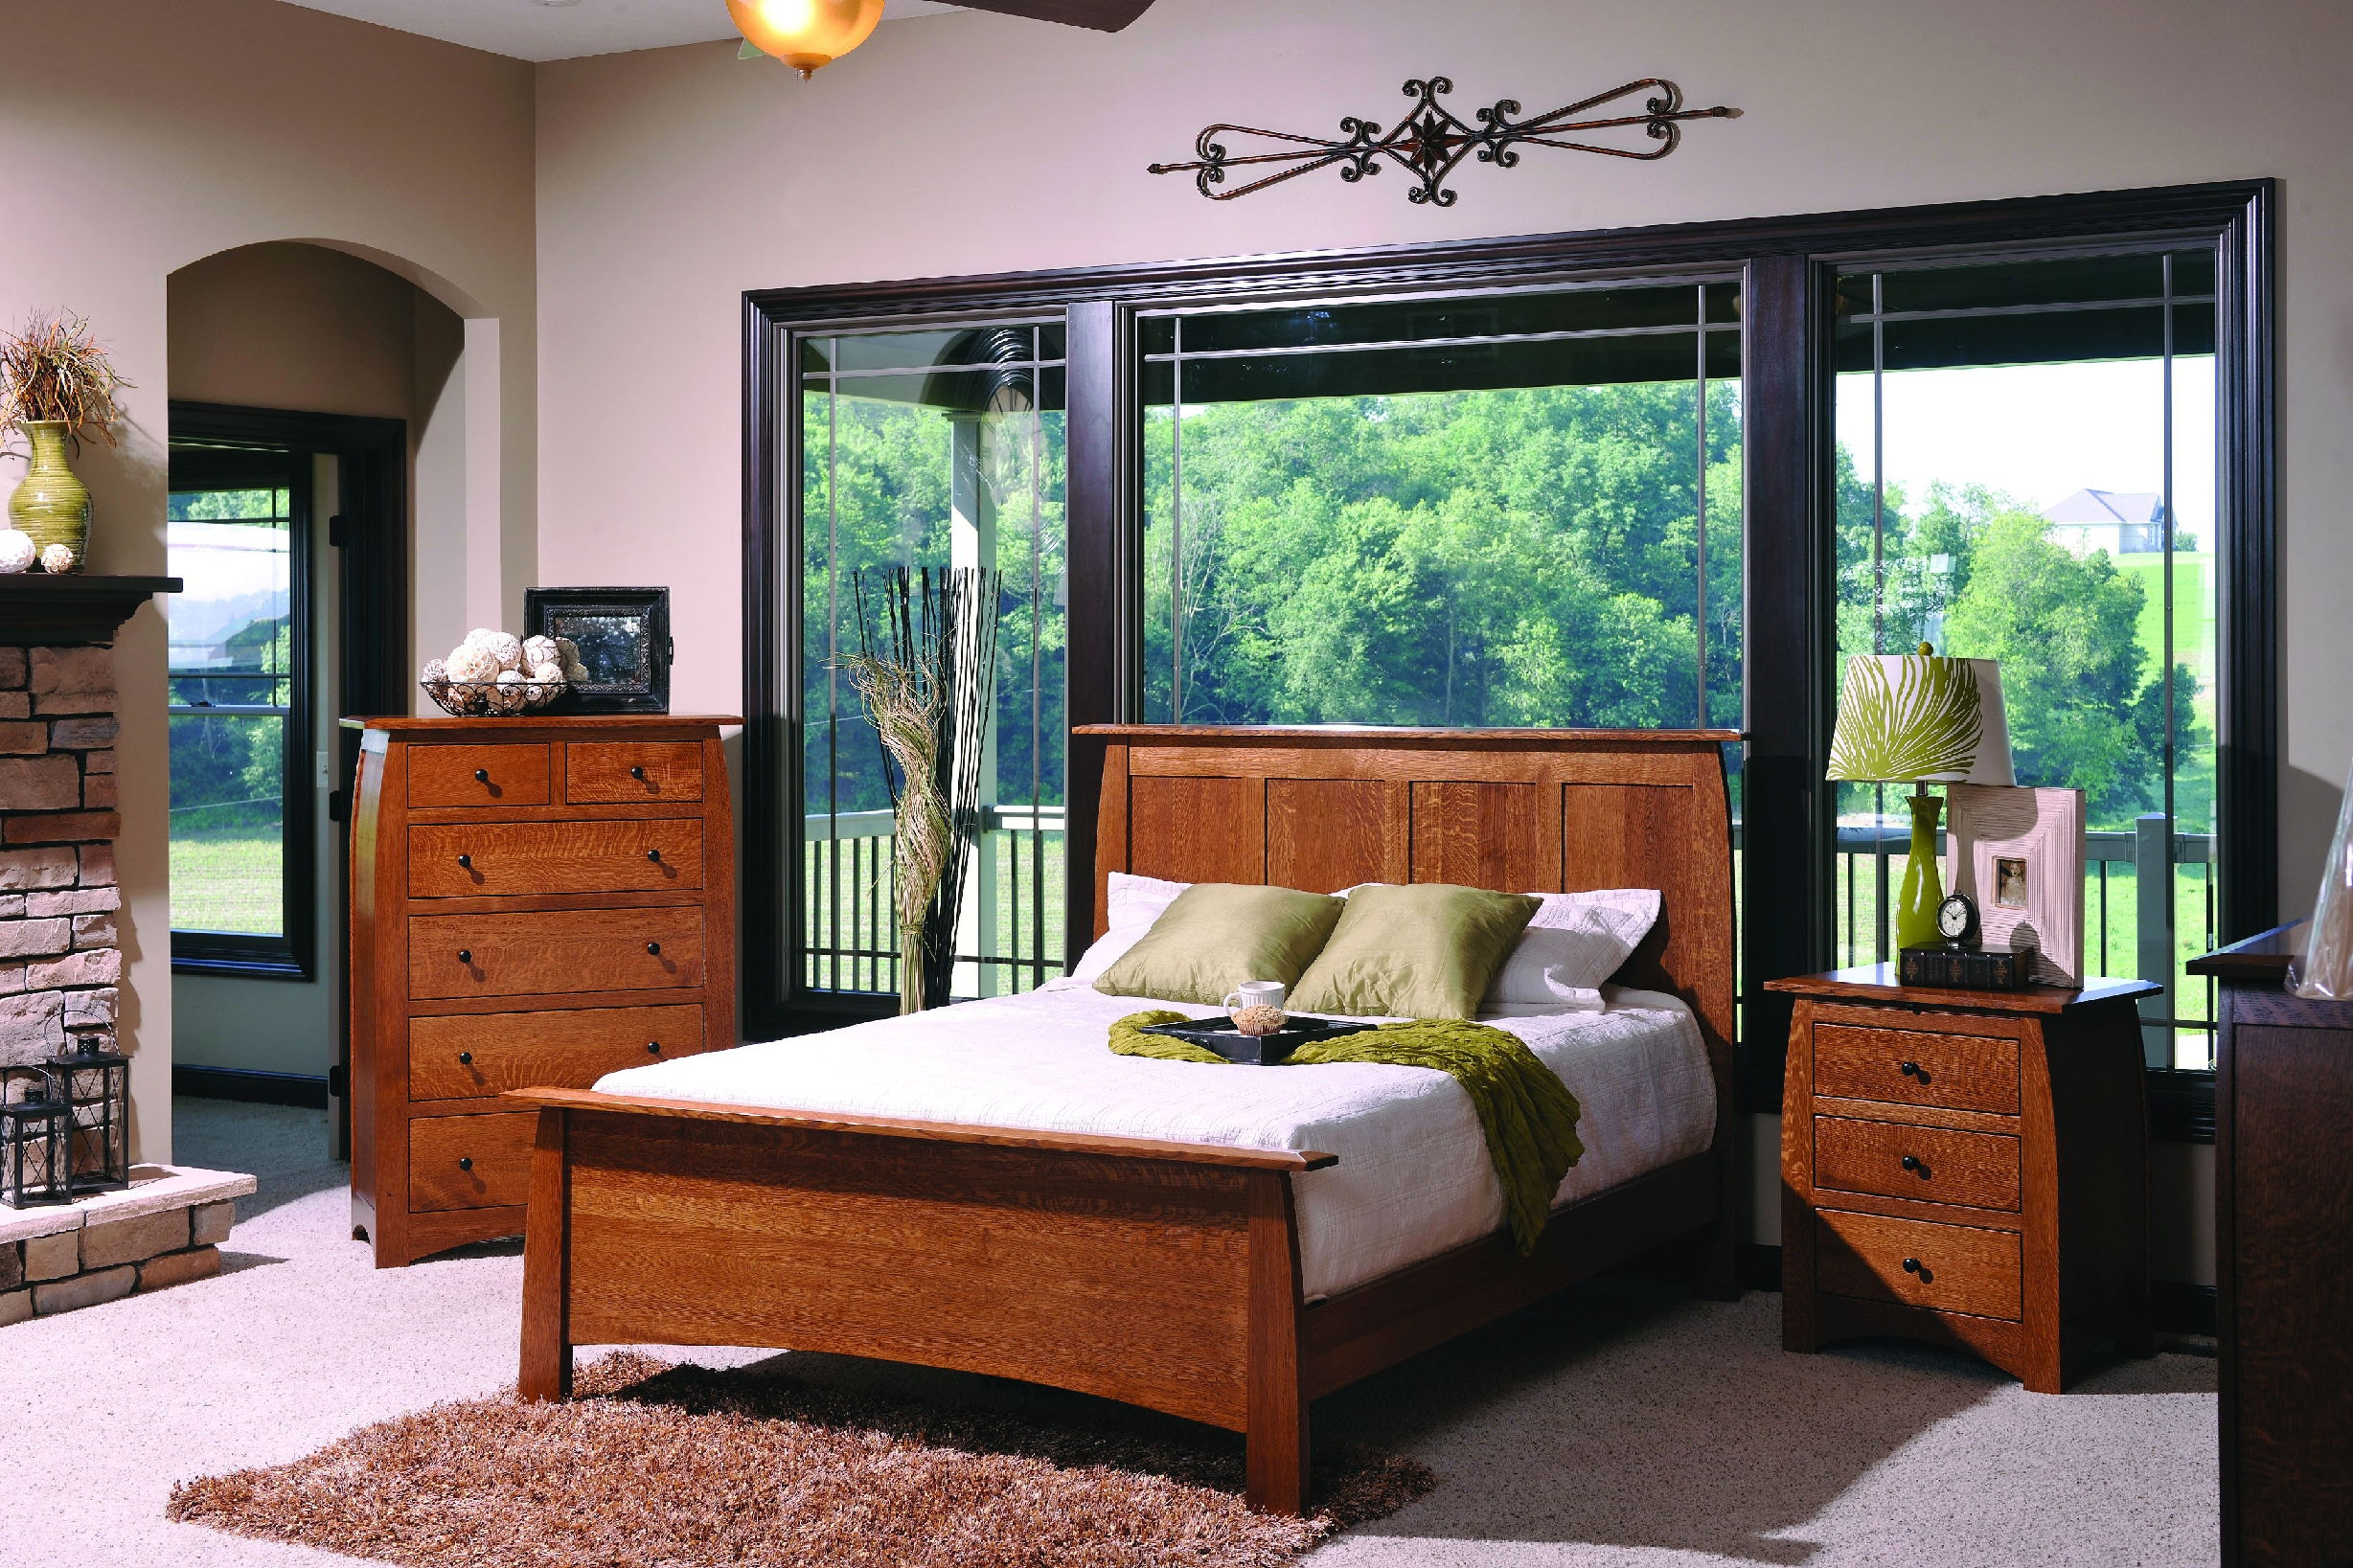 YUTZY WOODWORKING Vail Bed 64103